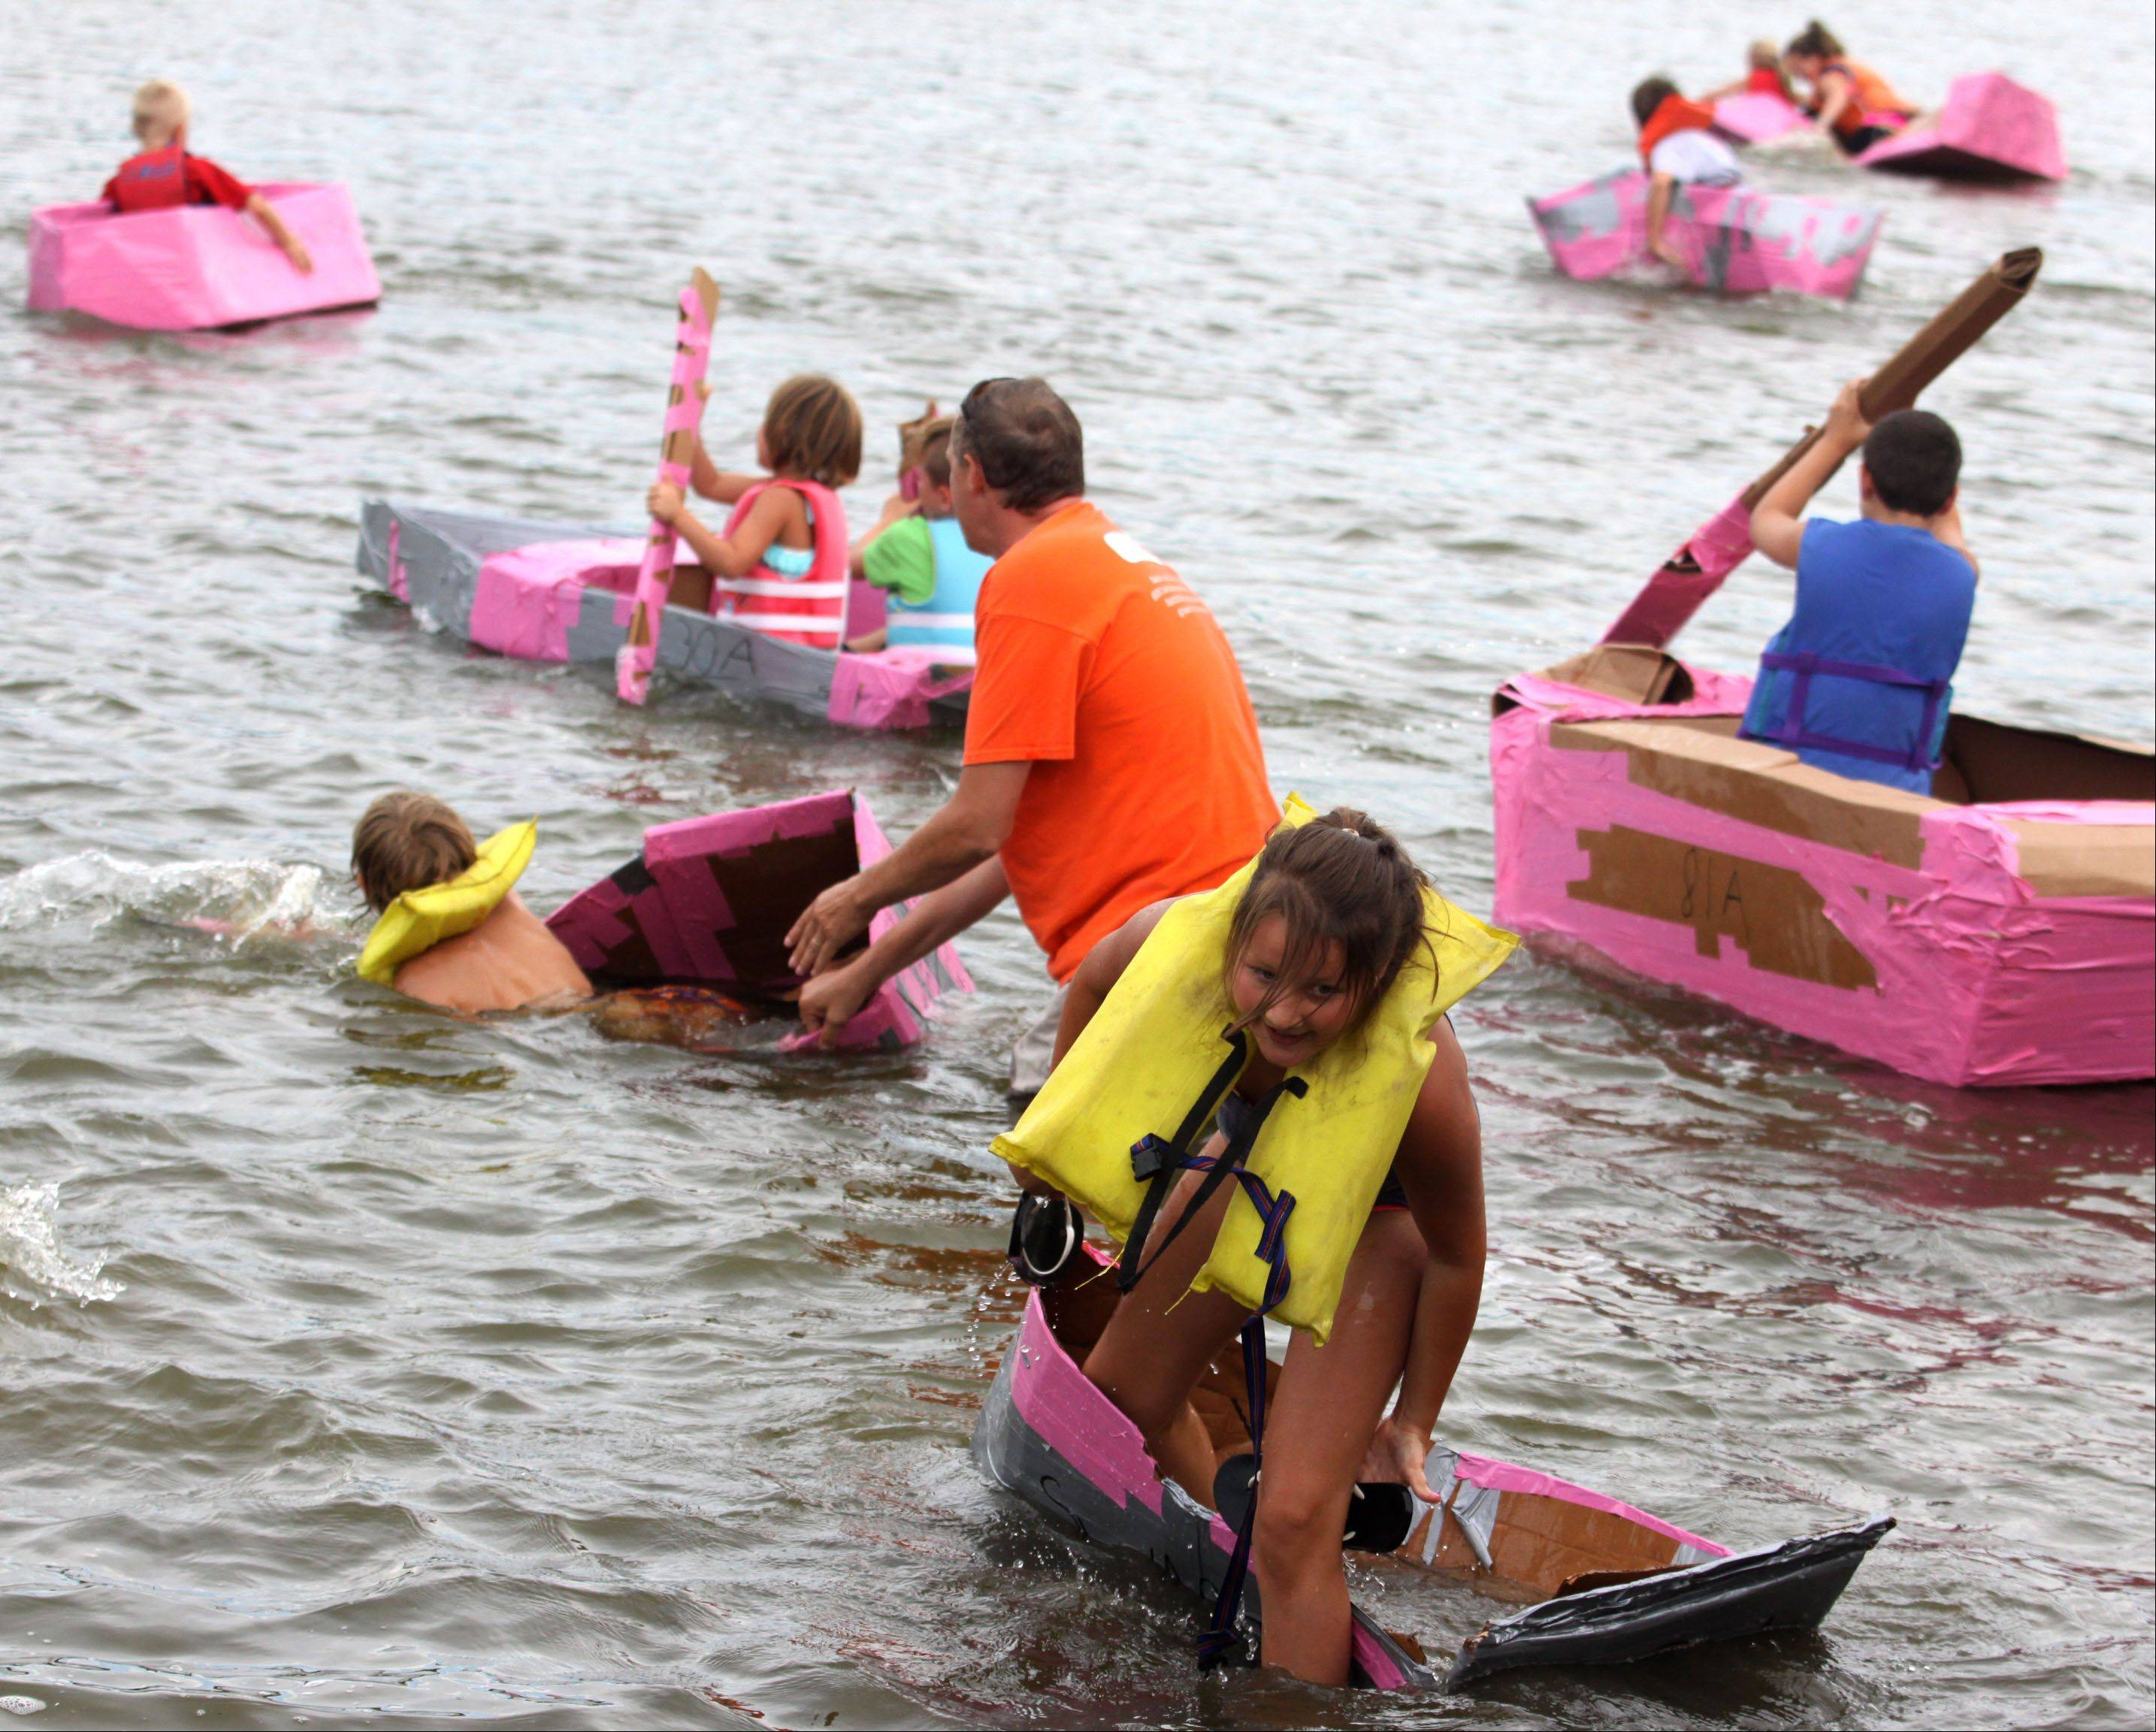 Participants slog back to shore just after the start of the Cardboard Boat Regatta juniors race as part of Founders' Days festivities on the Fox River in Algonquin Thursday night.